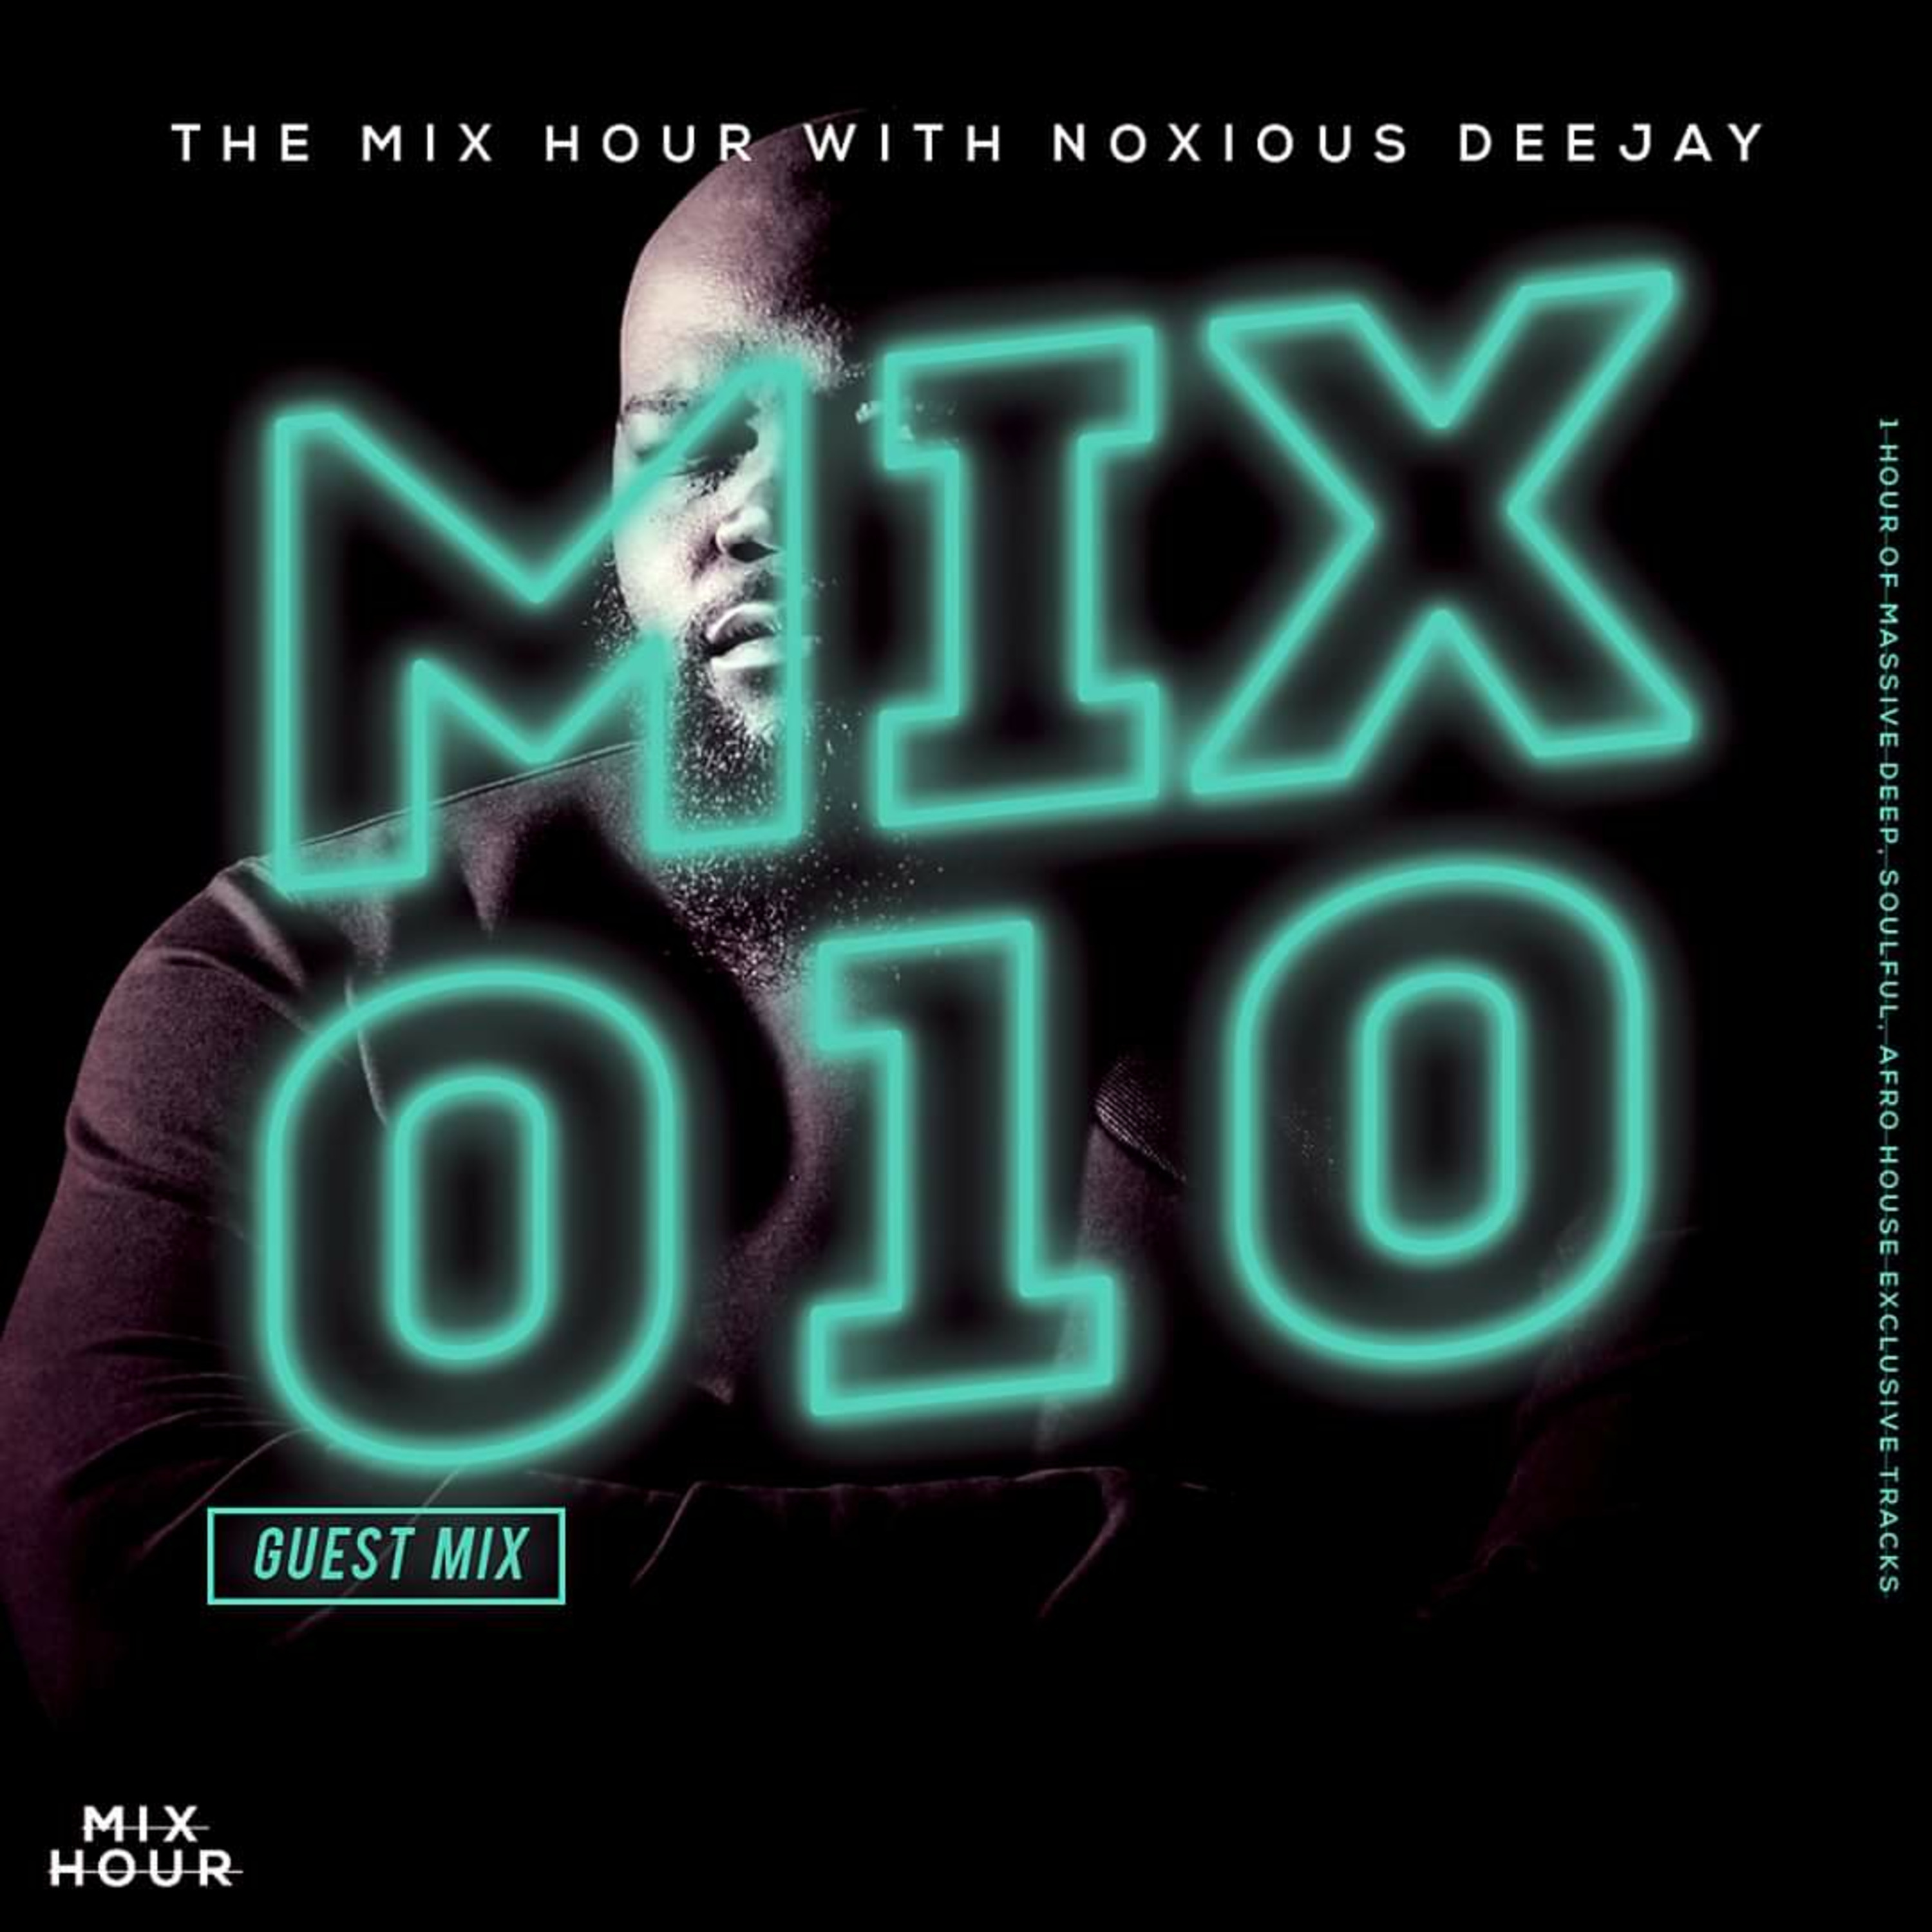 The Mixed Hour Mixed By Noxious Deejay (Mix 010)